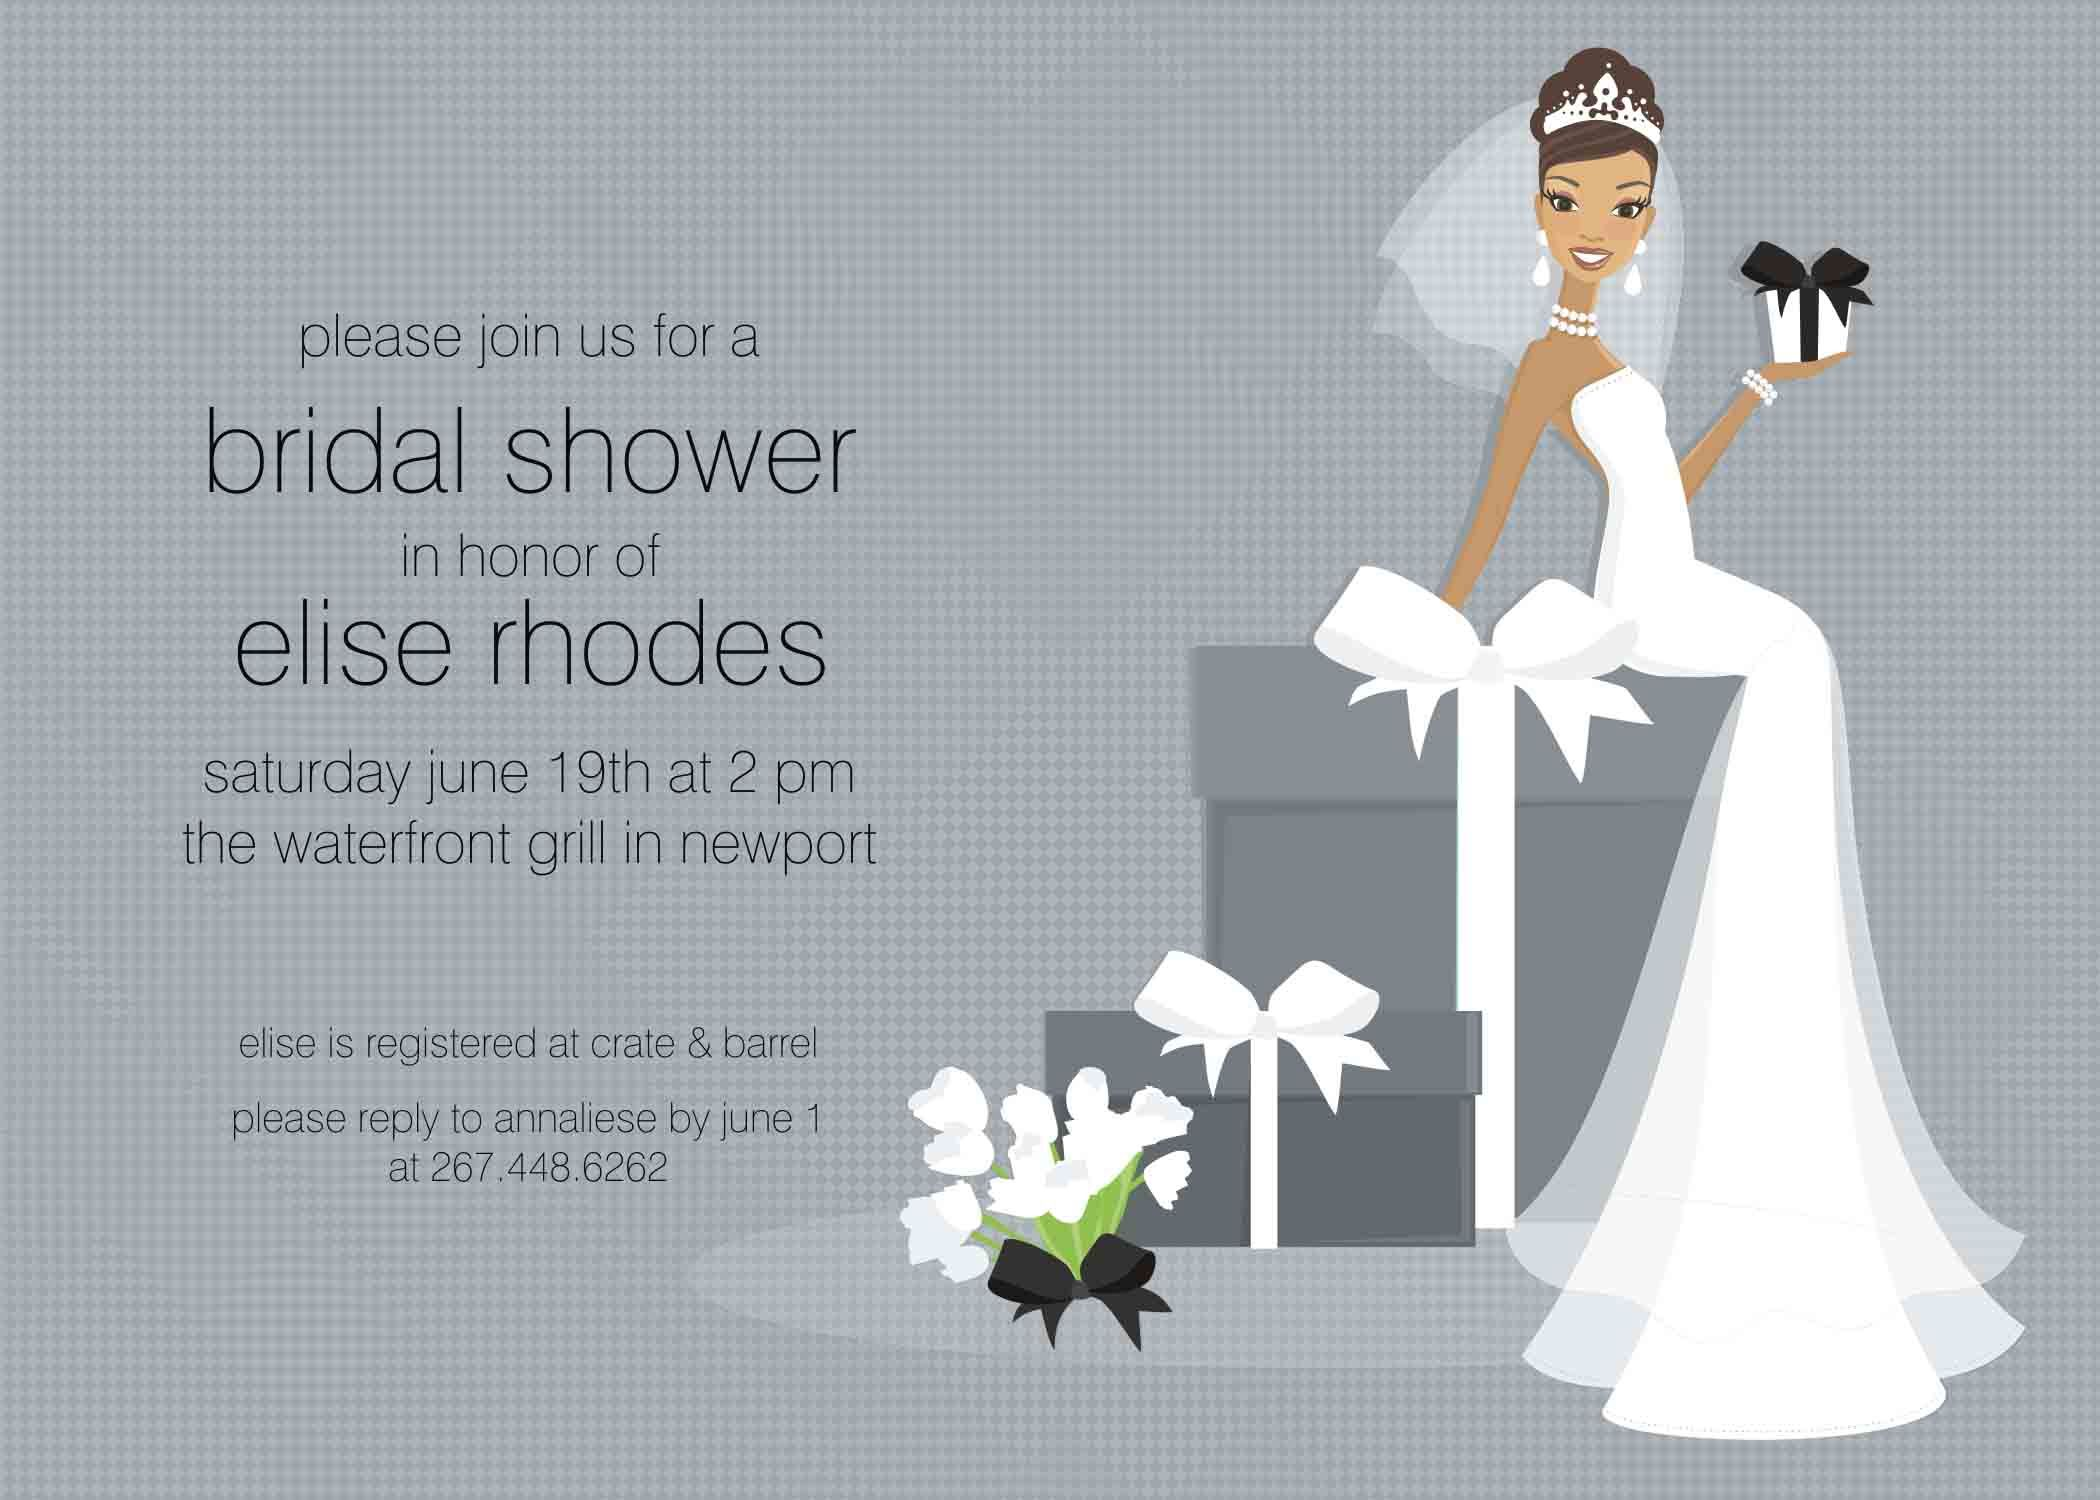 free bridal shower invitation templates  free wedding shower, invitation samples